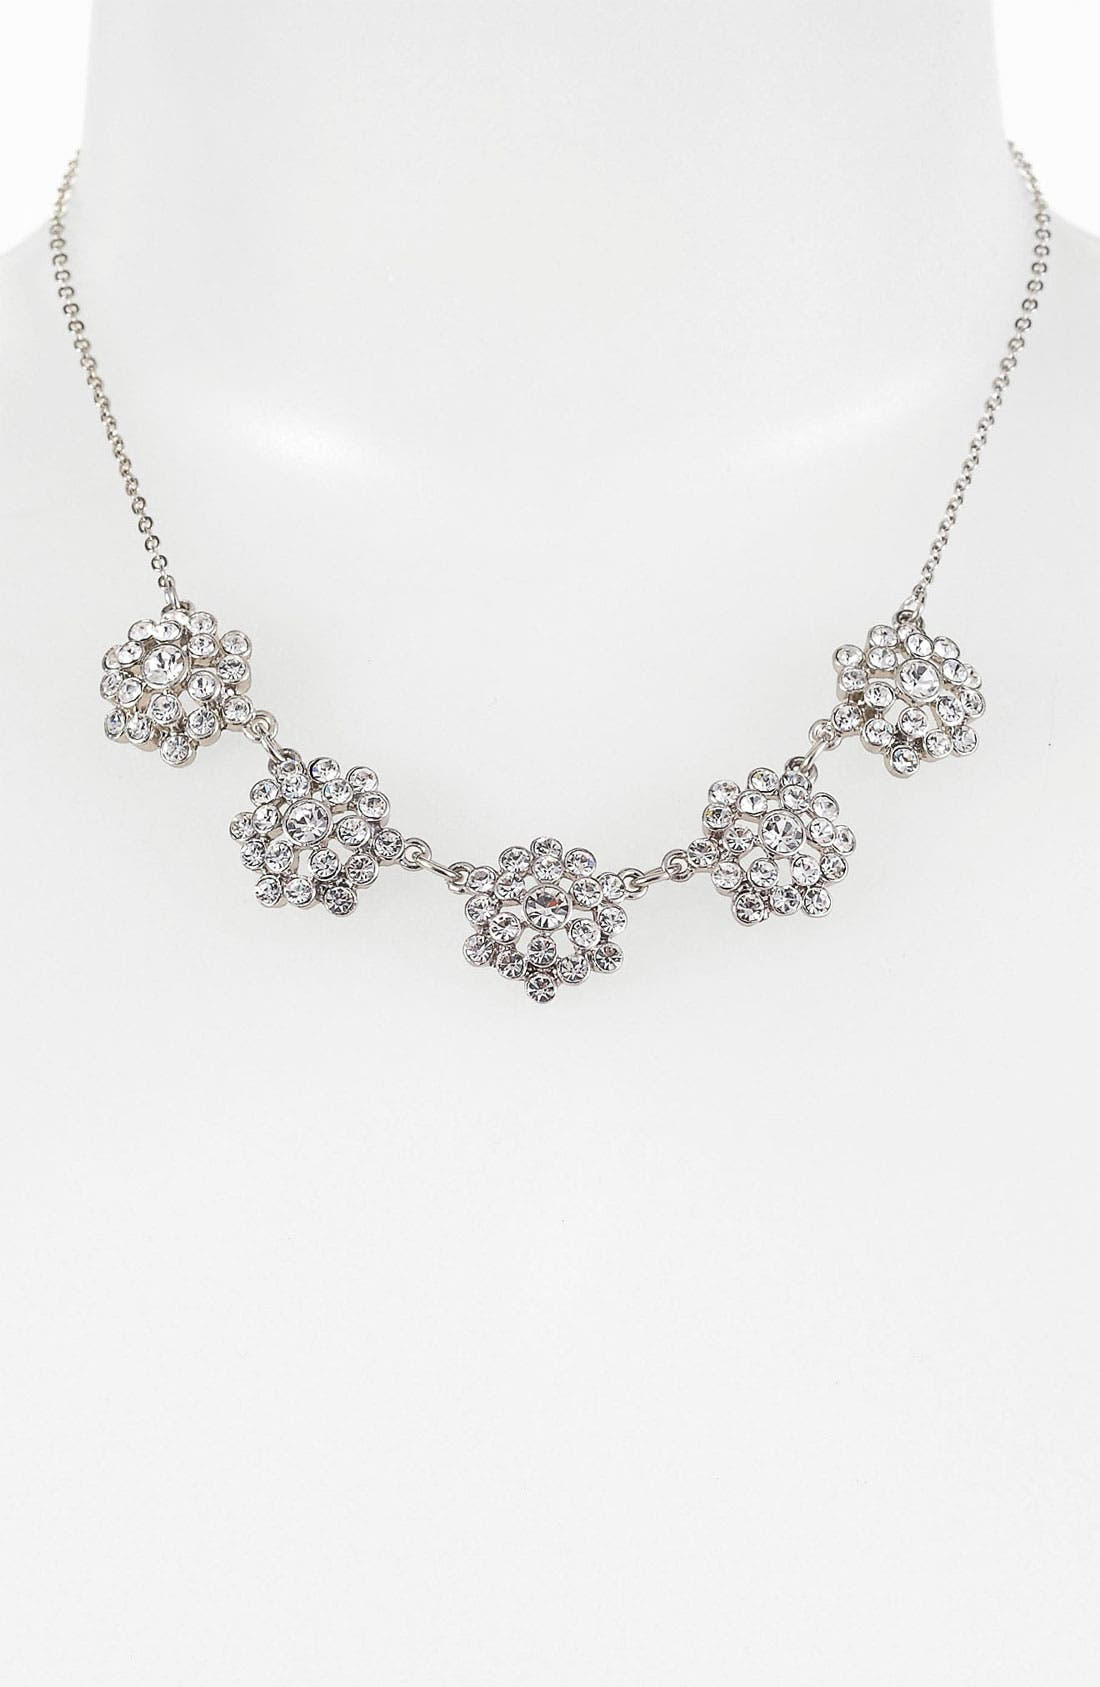 Main Image - Nina 'Juliet' Frontal Necklace